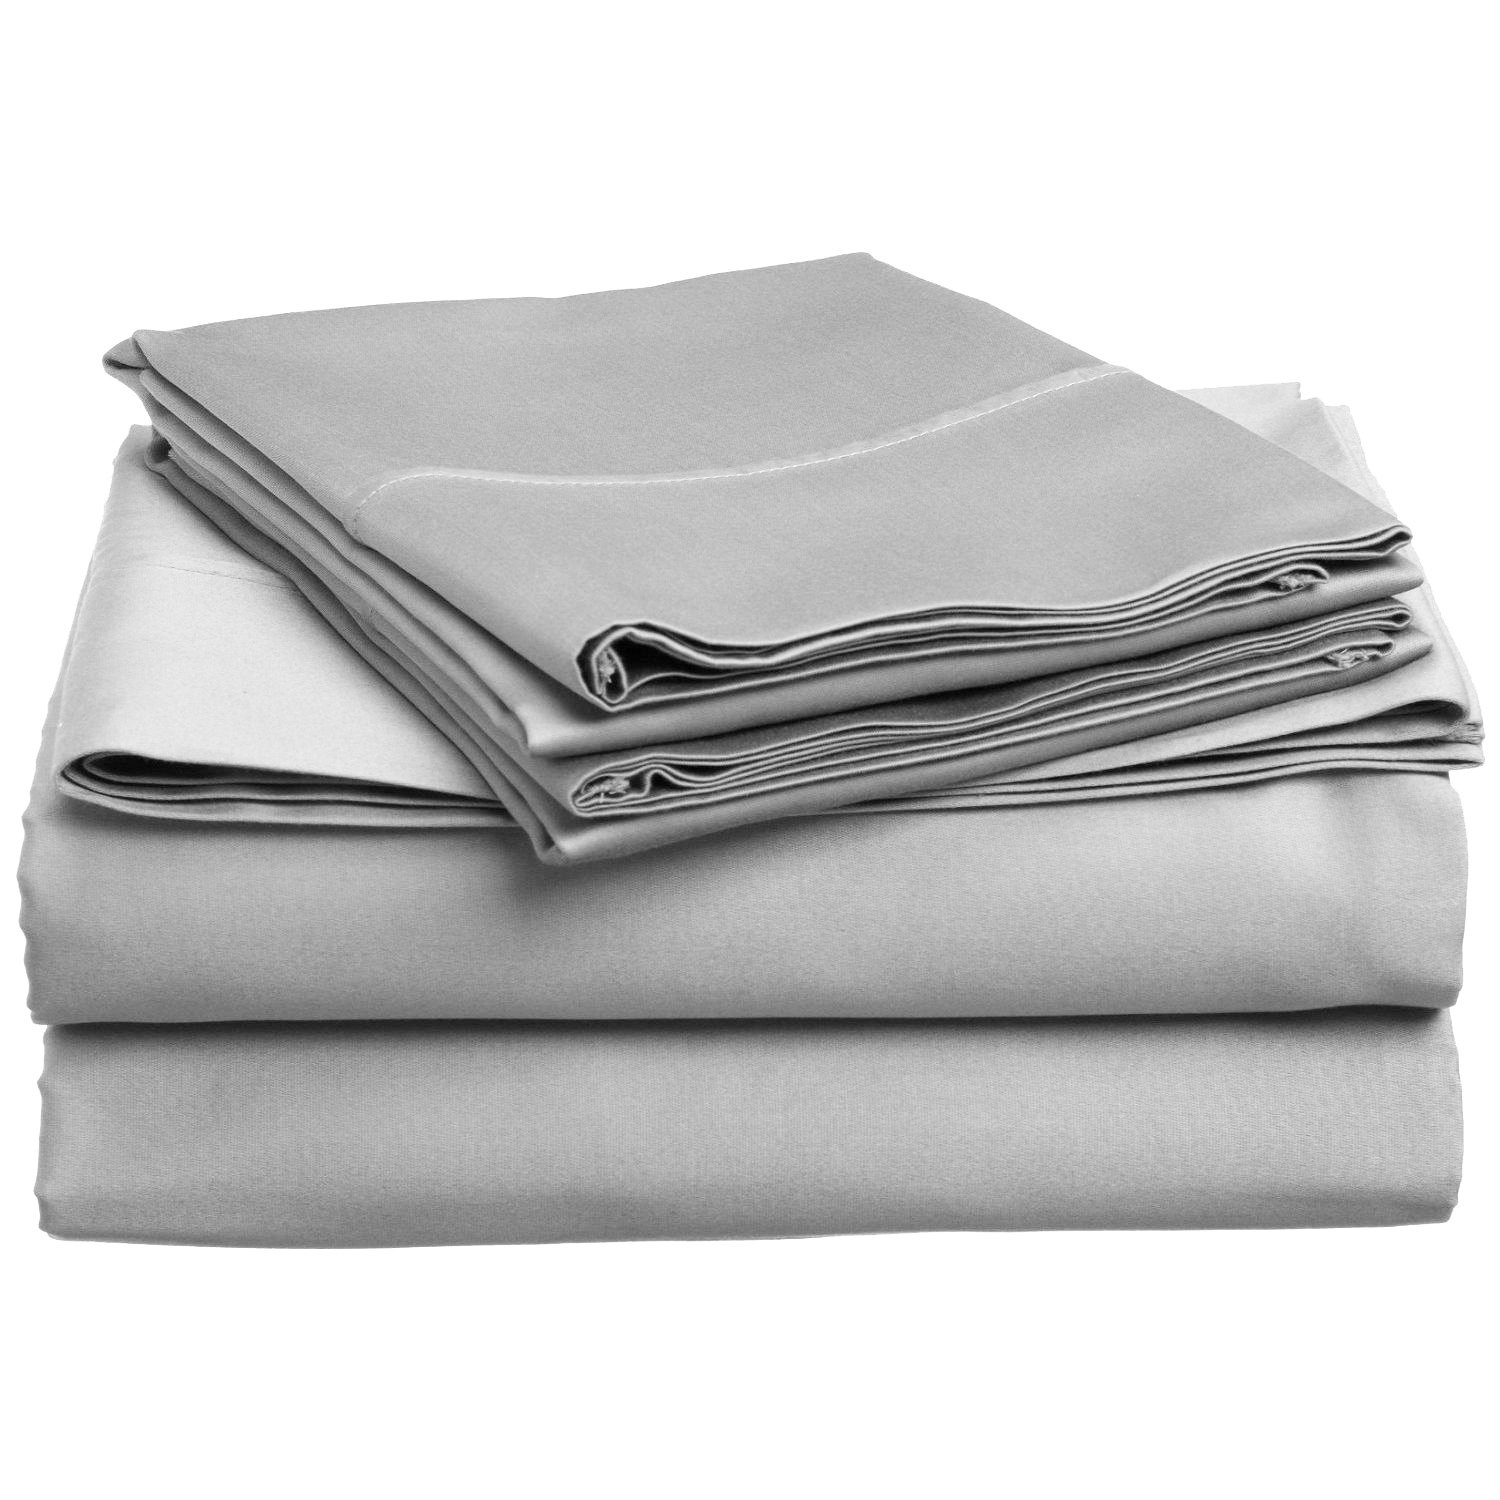 100% Premium Combed Cotton, 300 Thread Count; Deep-fitting pocket, Soft & Smooth 4-Piece California King Sheet Set, Solid Light Grey